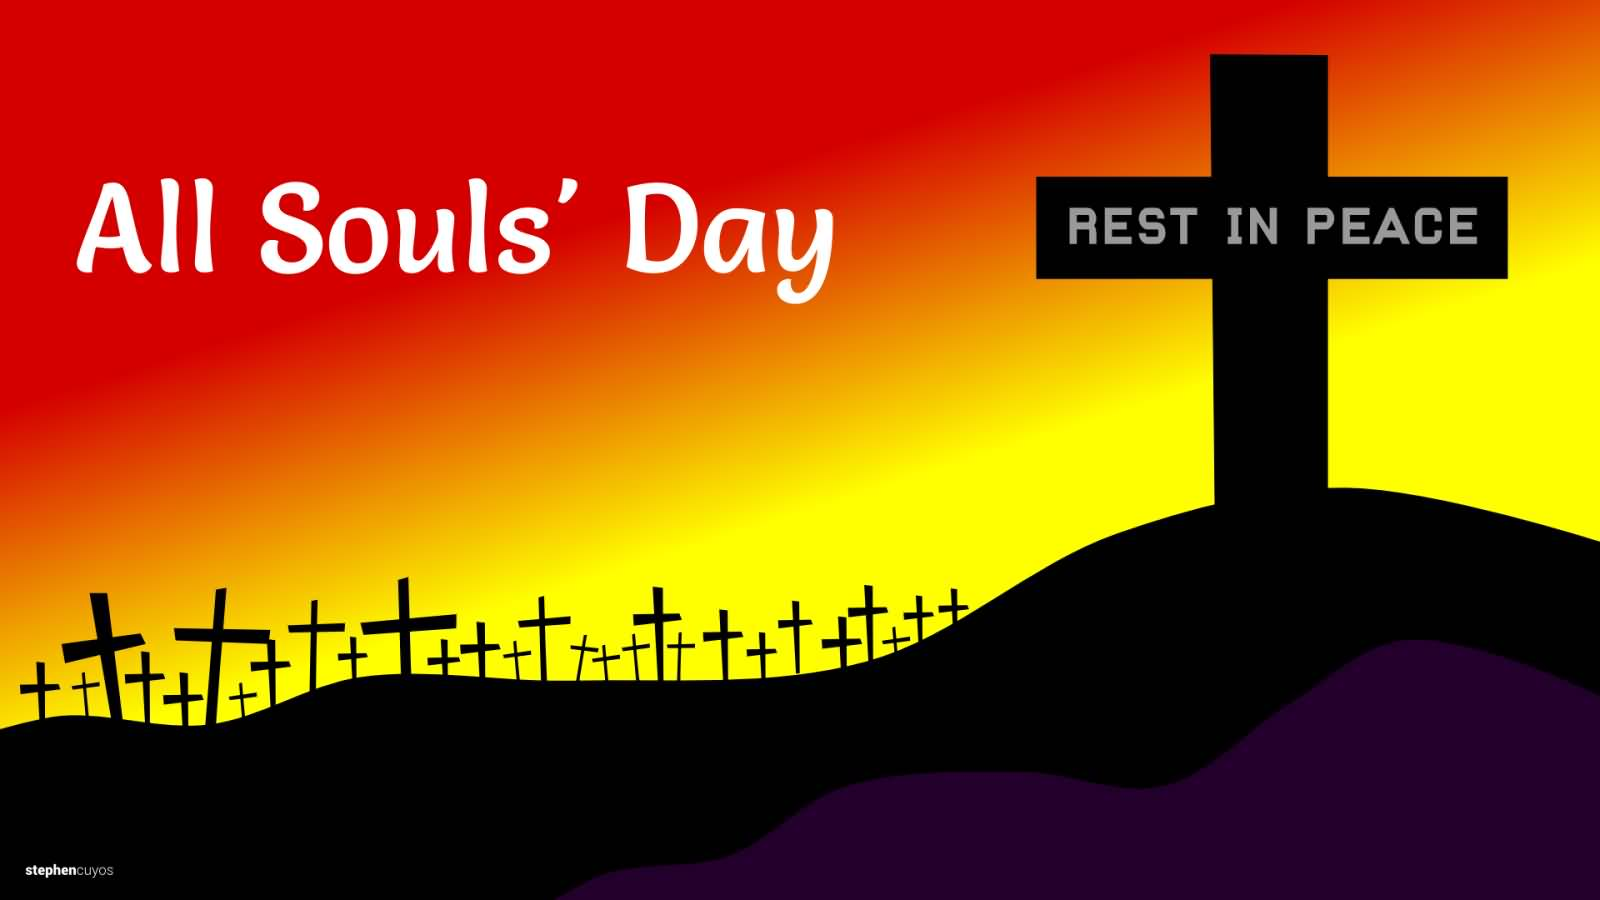 Hd Wallpapers Of Nail Art 28 Best Pictures And Photos Of All Souls Day 2016